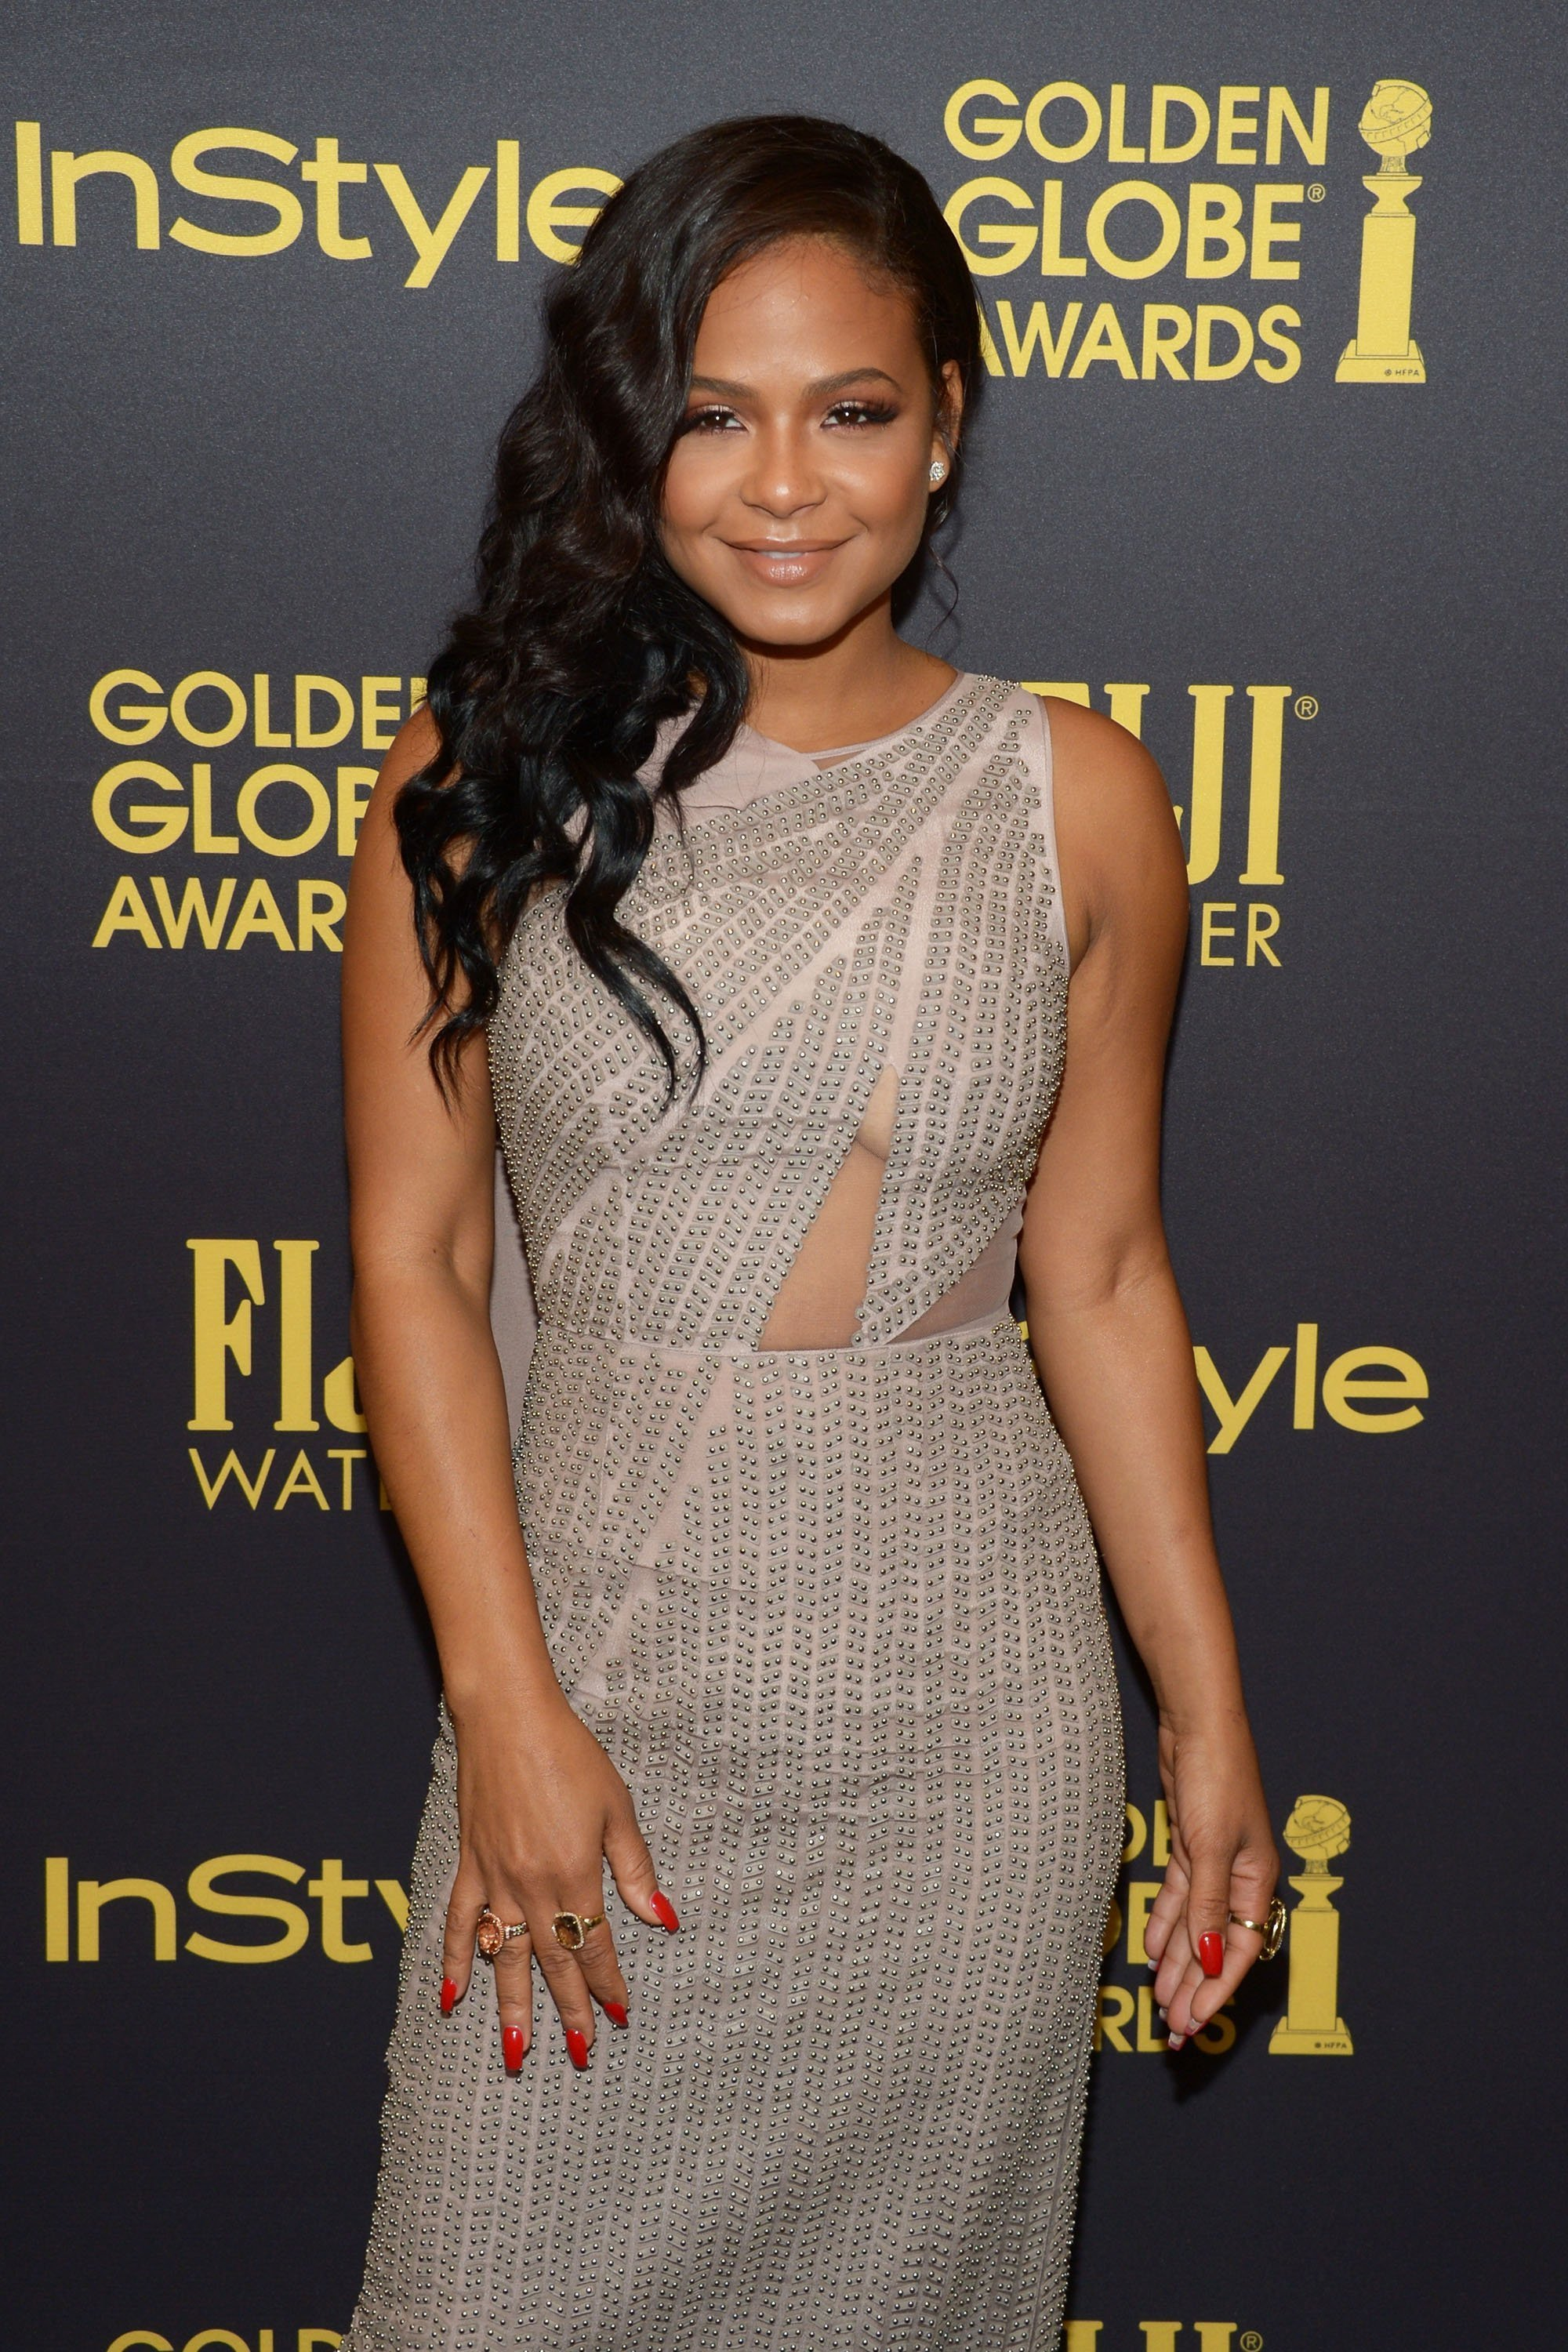 Christina Milian attends the Golden Globe Awards Season in West Hollywood, California on November 10, 2016 | Photo: Getty Images